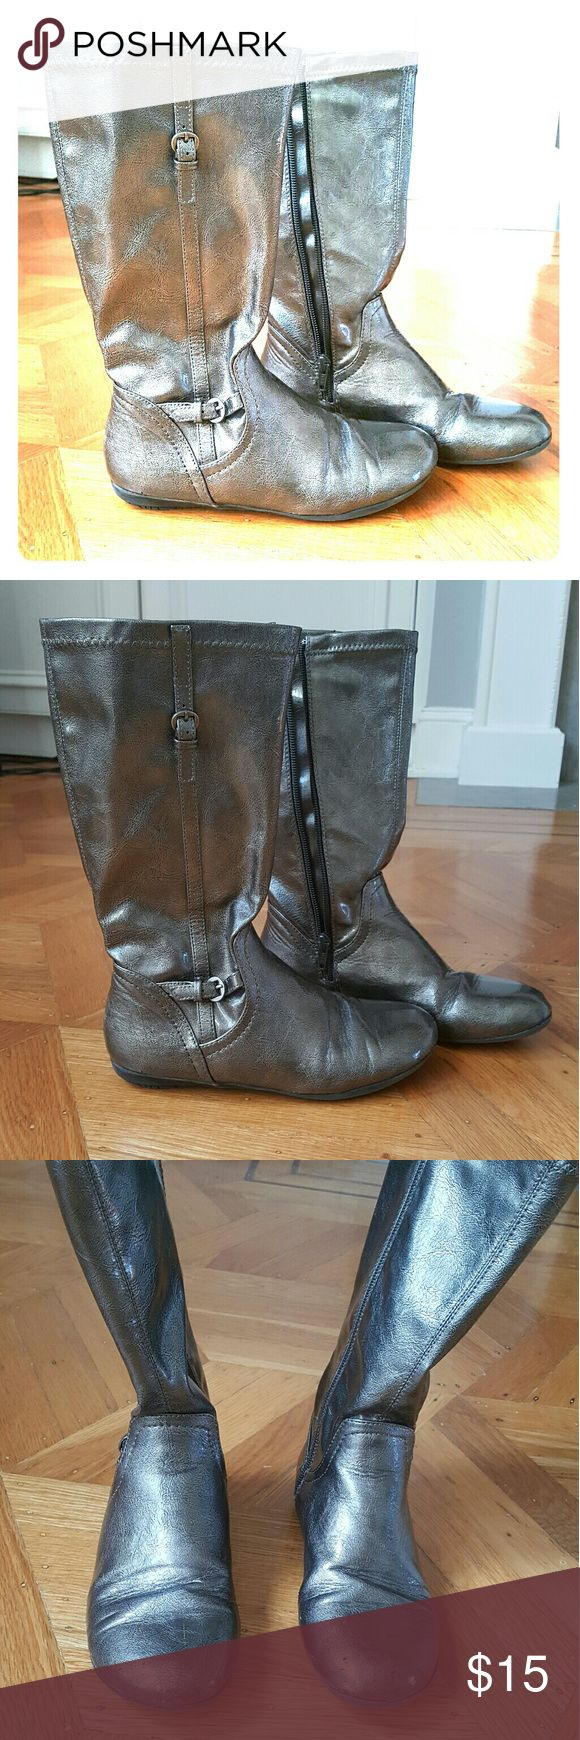 Girls Nordstrom Boots Very cute, pewter knee high boots, some scuffs. Nordstrom Shoes Boots